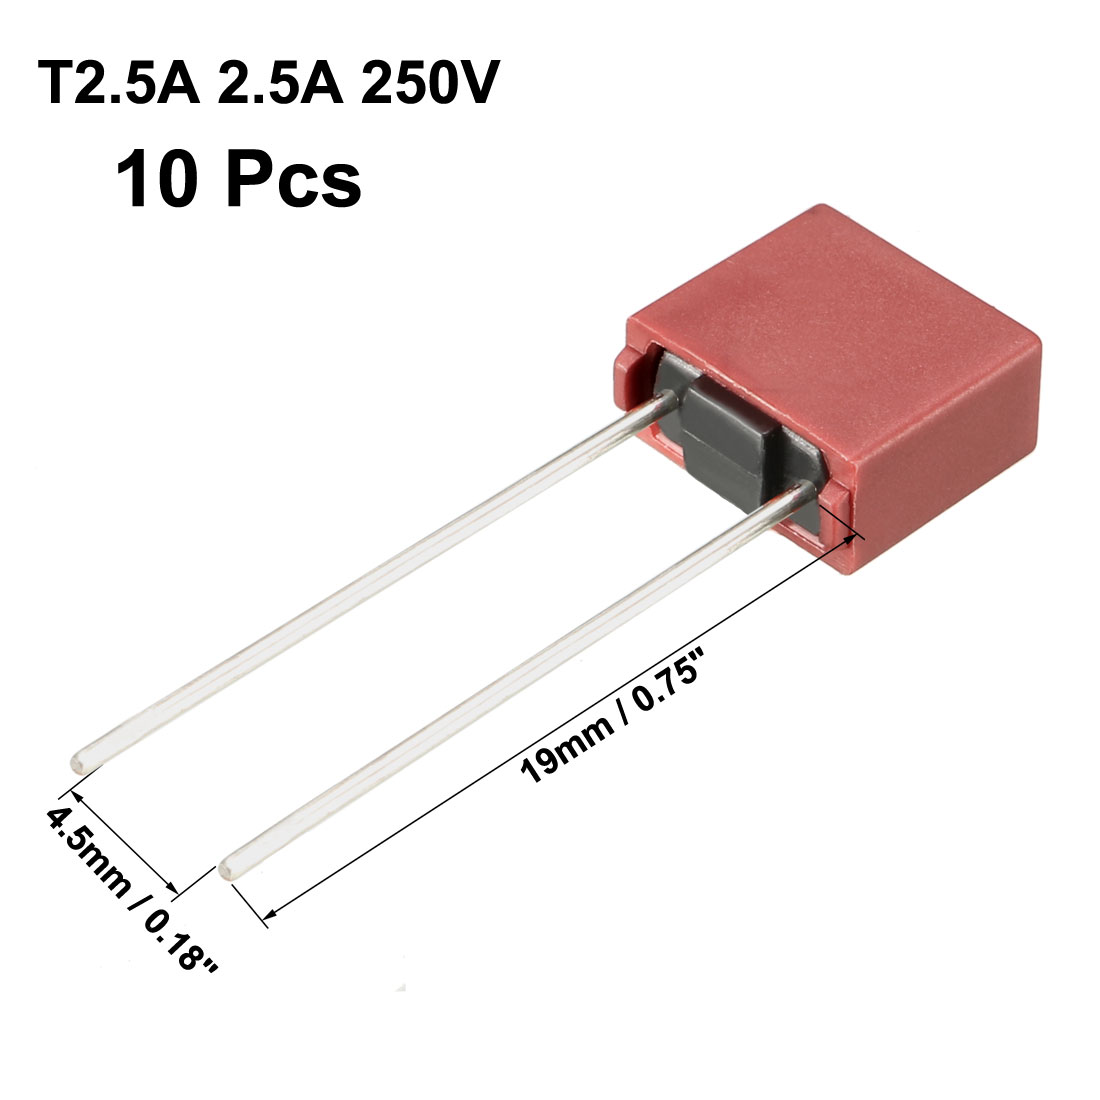 10Pcs DIP Mounted Miniature Square Slow Blow Micro Fuse T2.5A 2.5A 250V Red - image 3 de 4